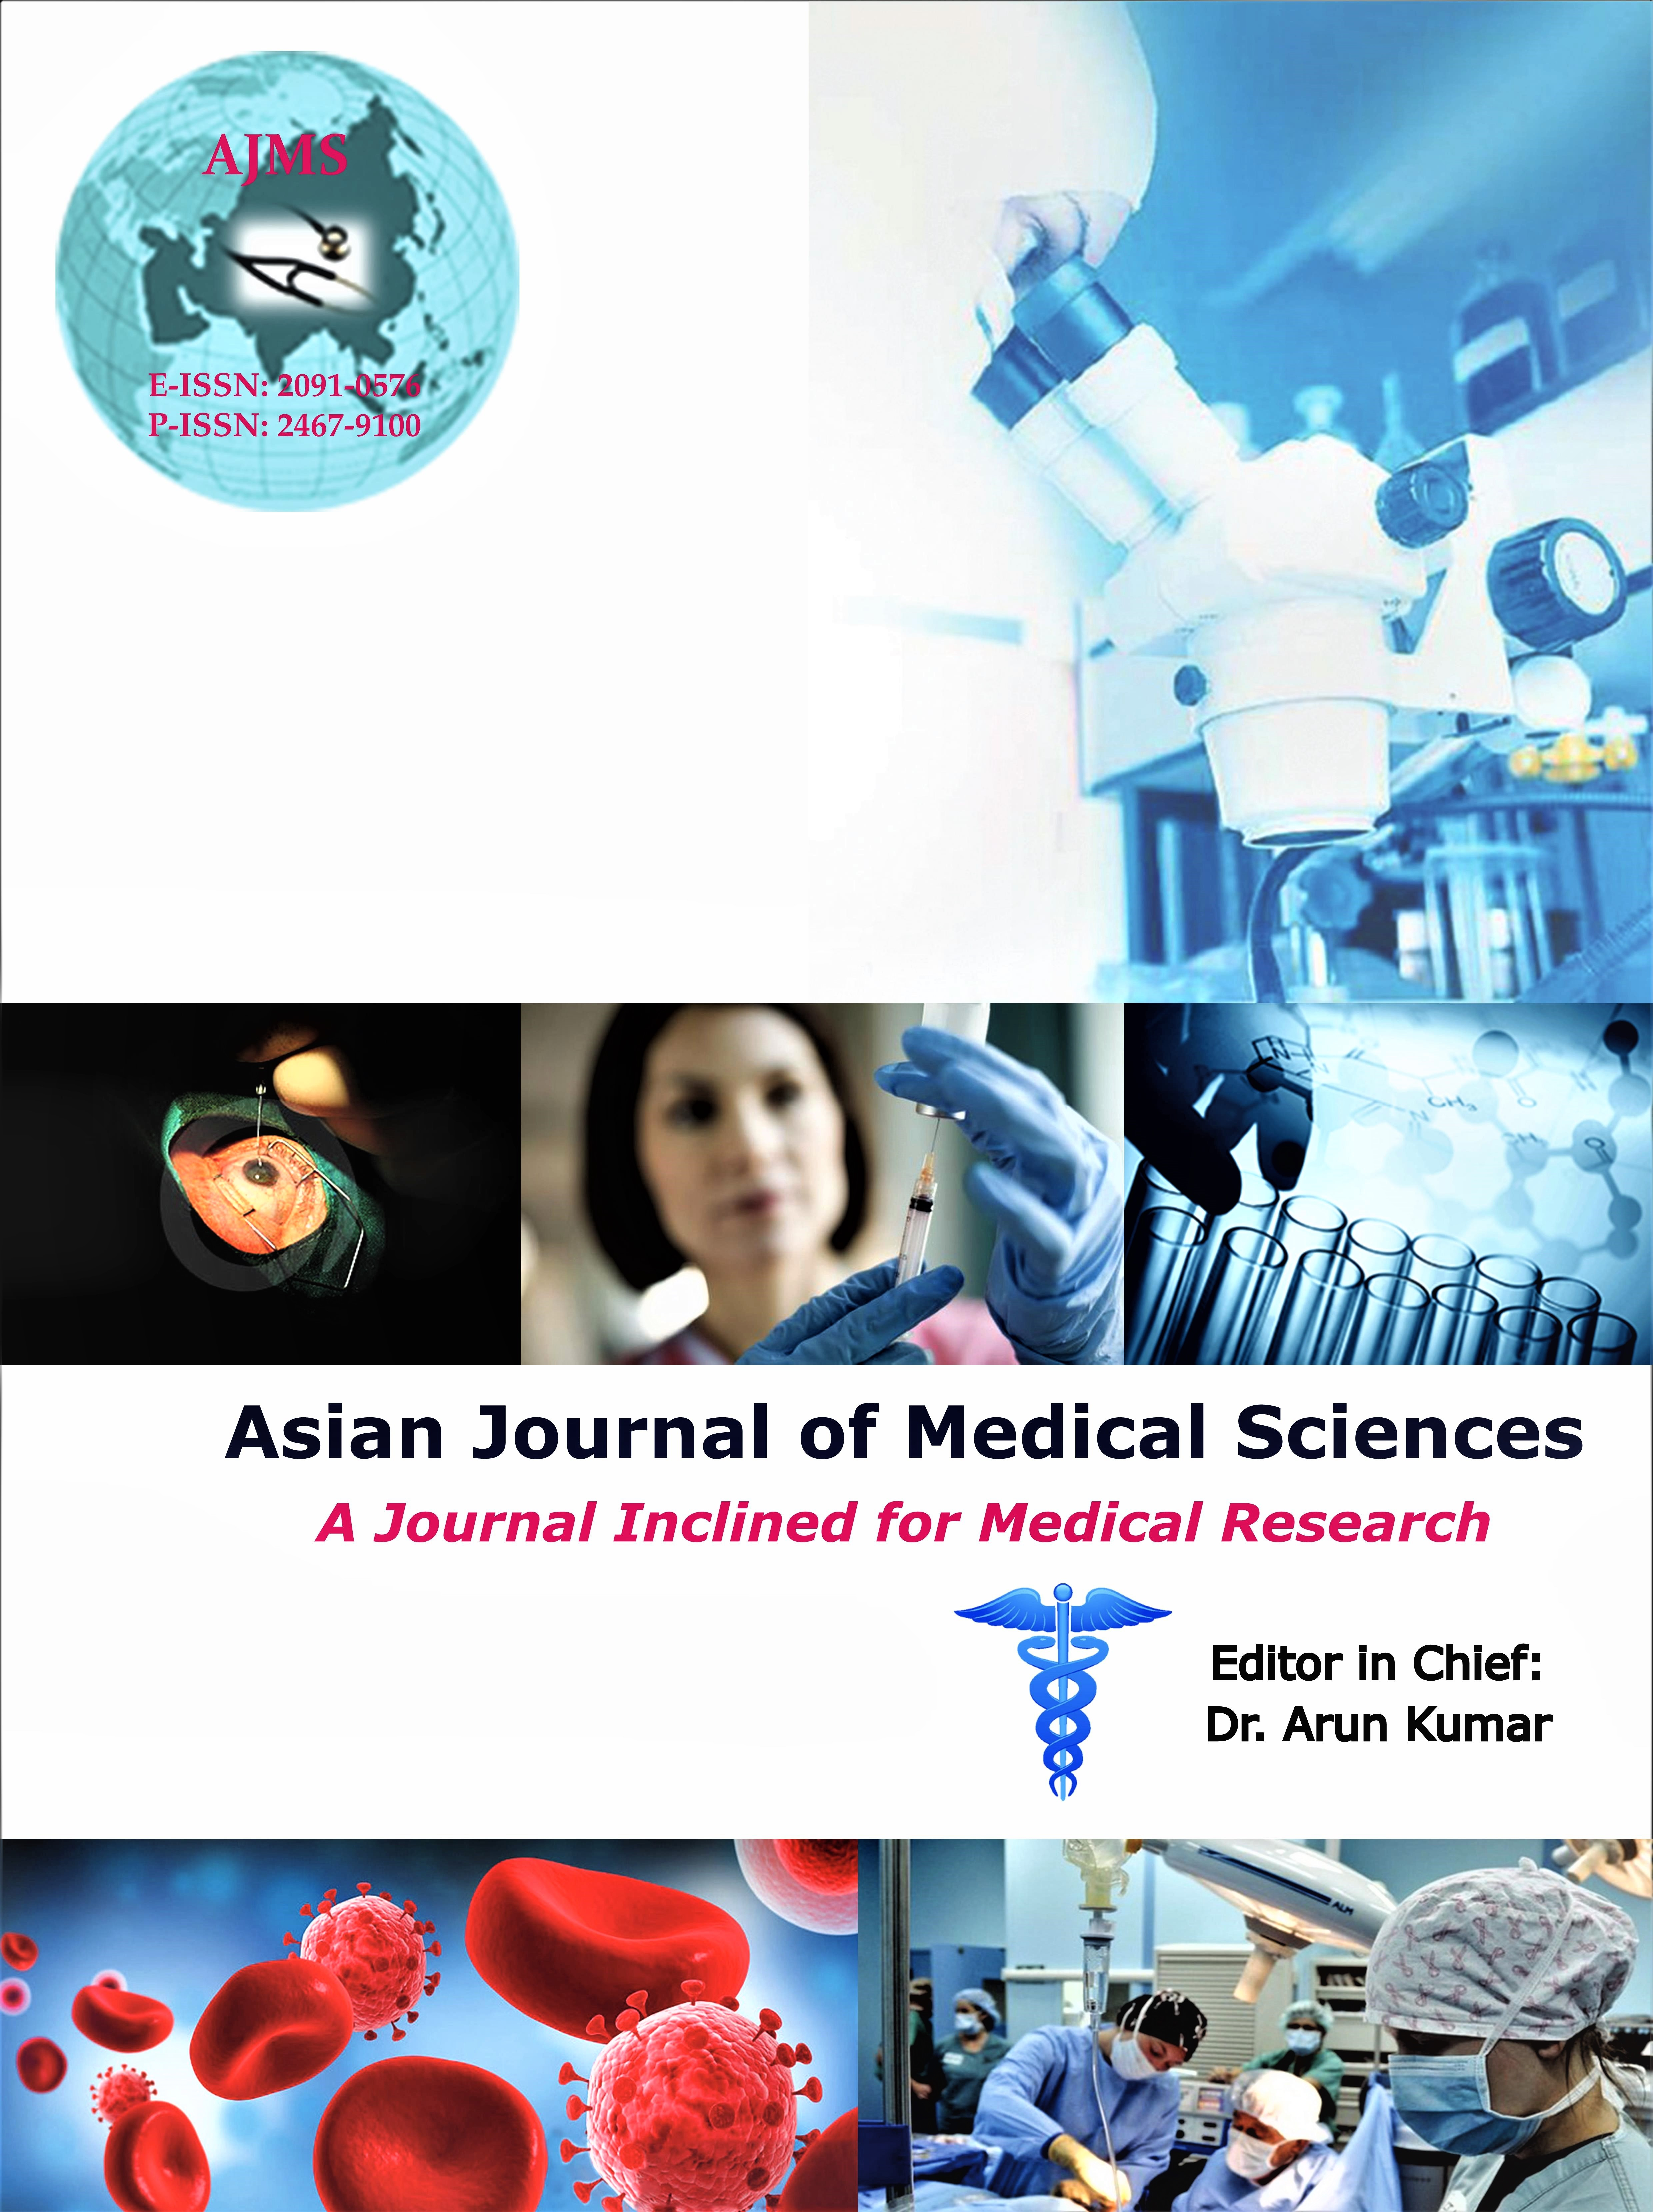 Current issue of AJMS